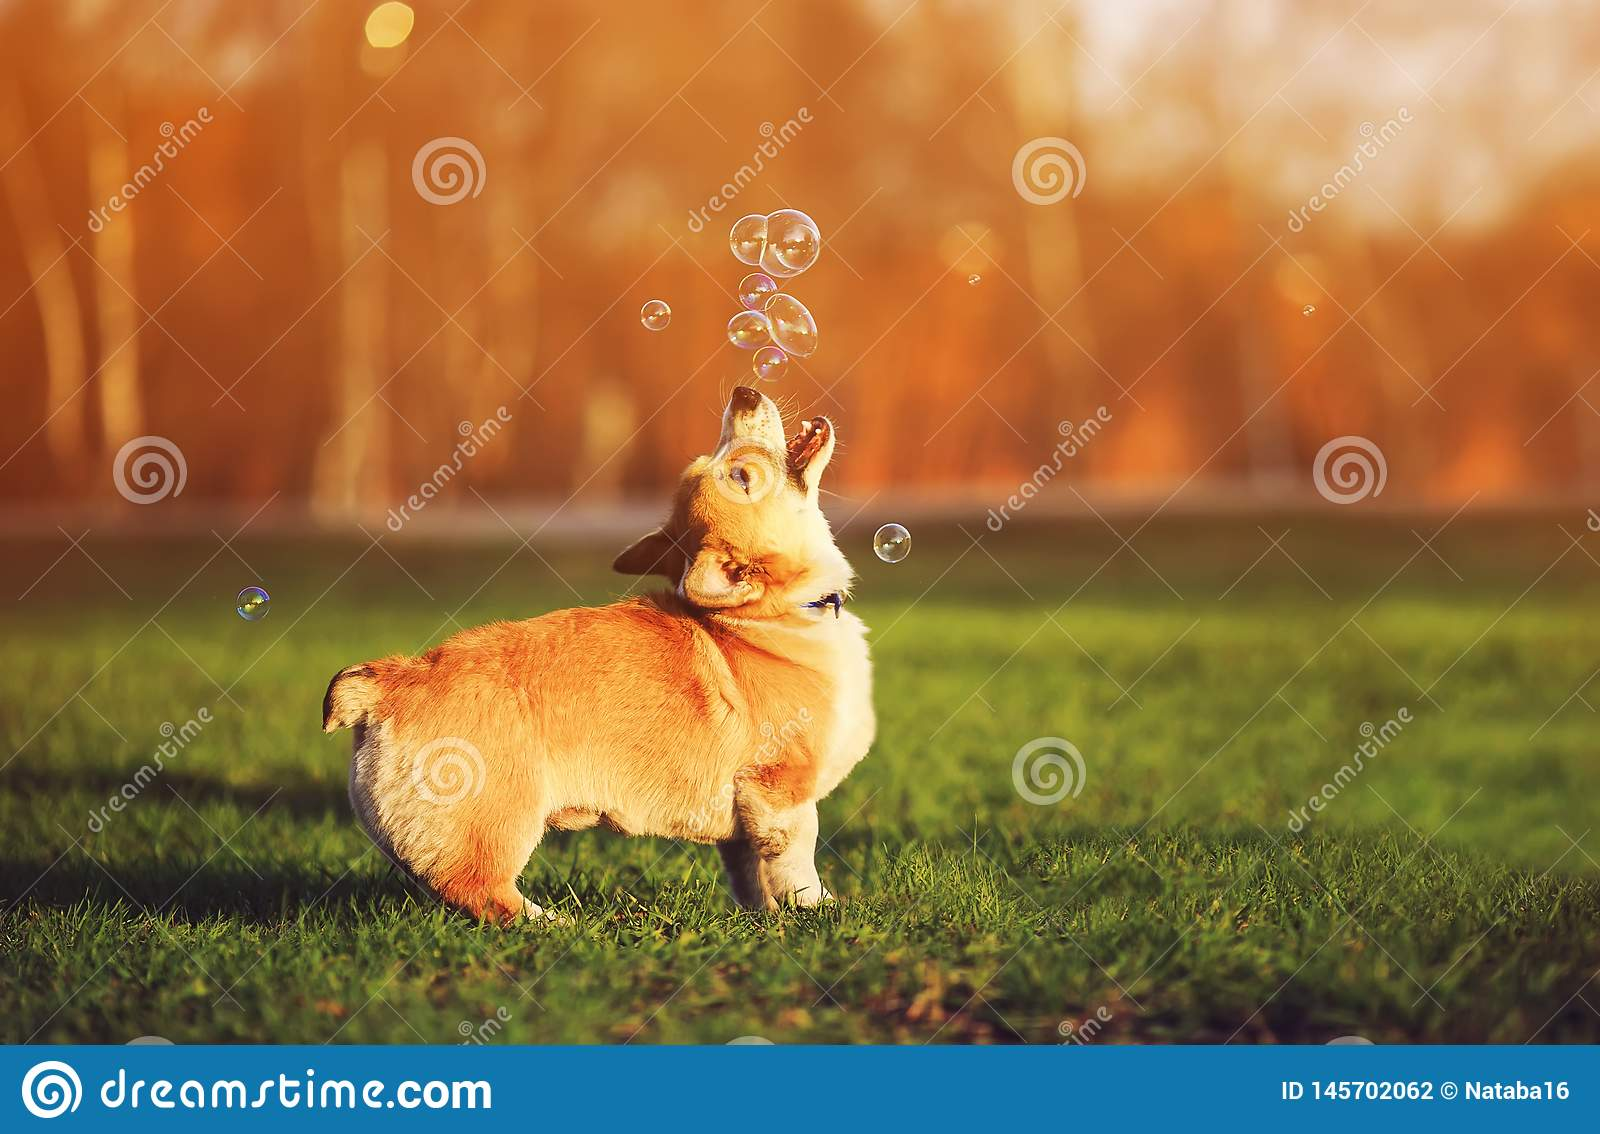 red dog puppy Corgi walking on green young grass on spring Sunny meadow and catching shiny soap bubbles